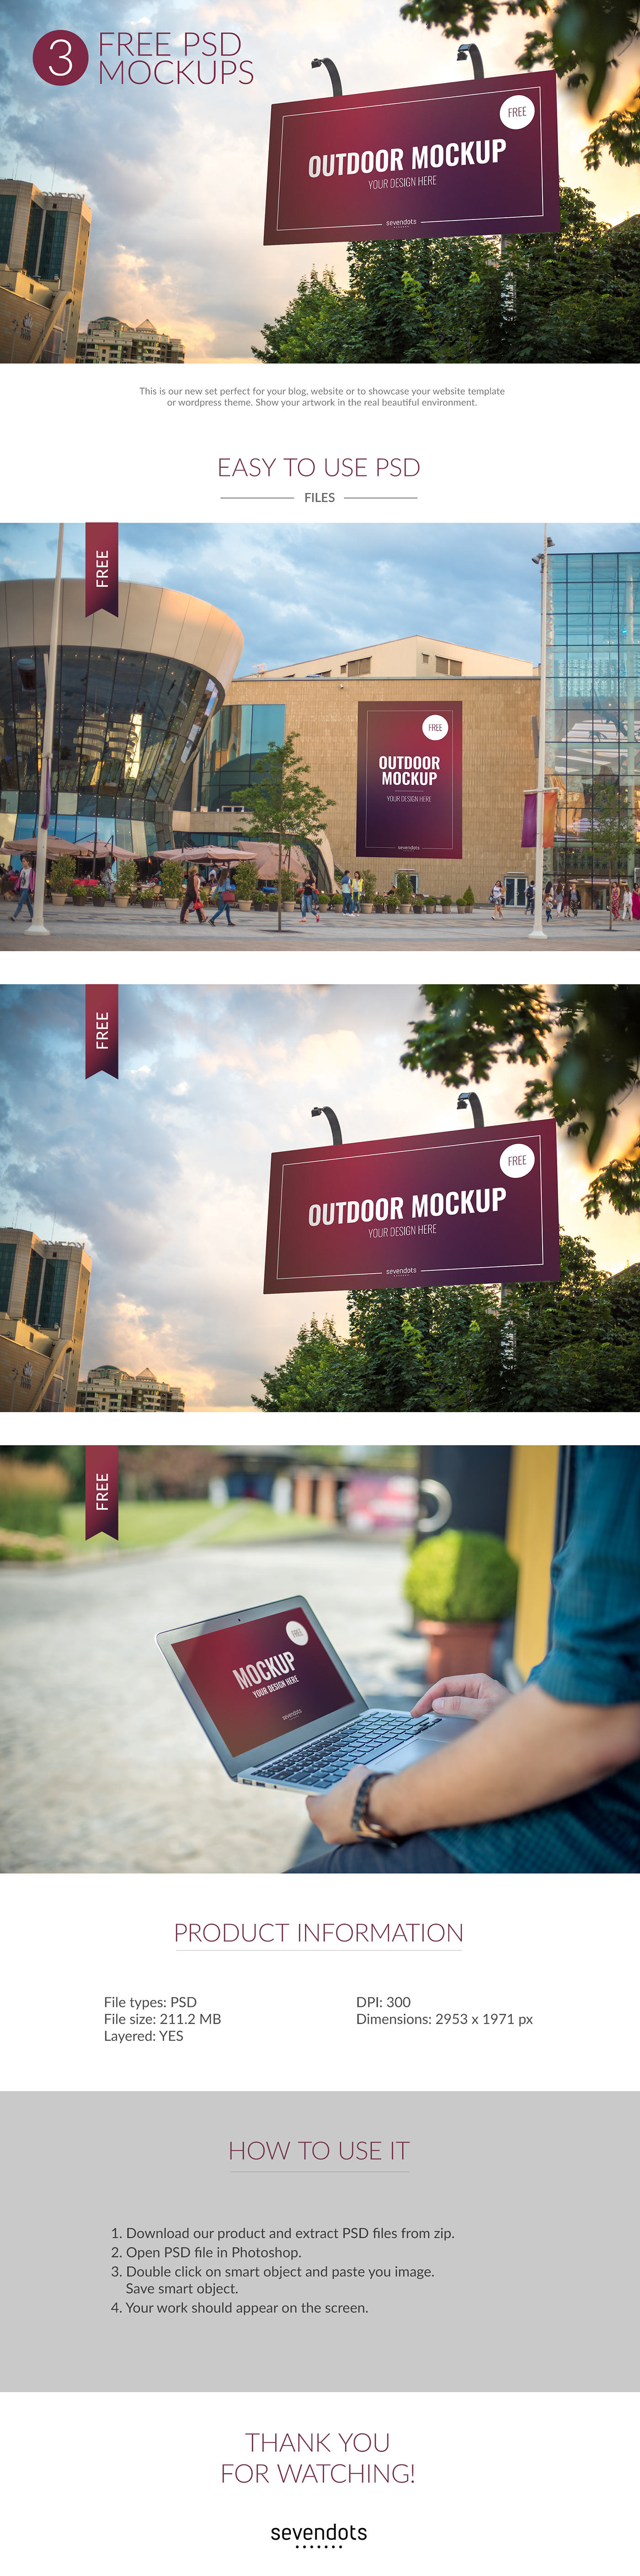 Free 3 Outdoor PSD Mockups